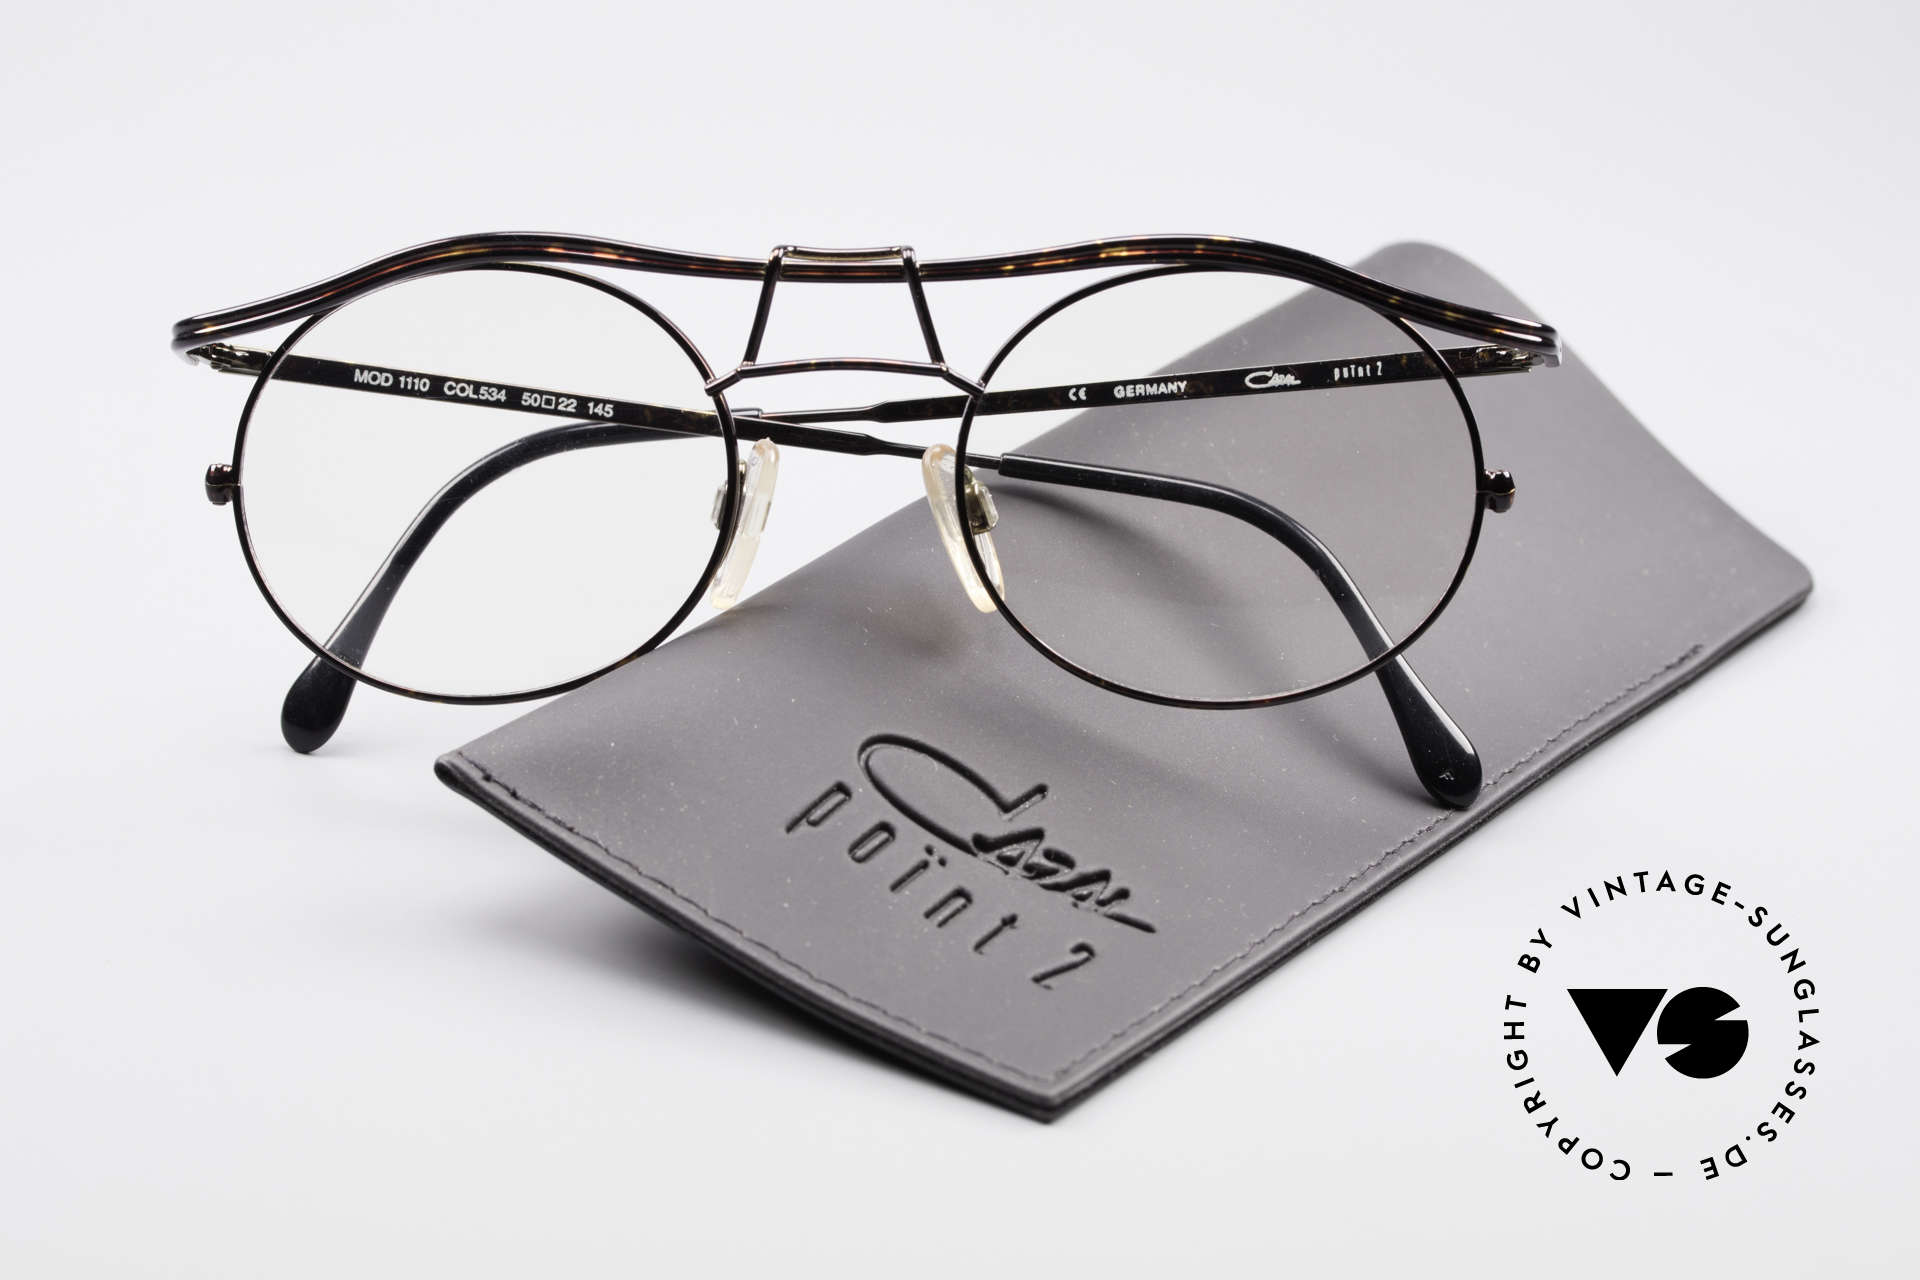 Cazal 1110 - Point 2 90's Industrial Eyeglasses, the frame is made for lenses of any kind (optical / sun), Made for Men